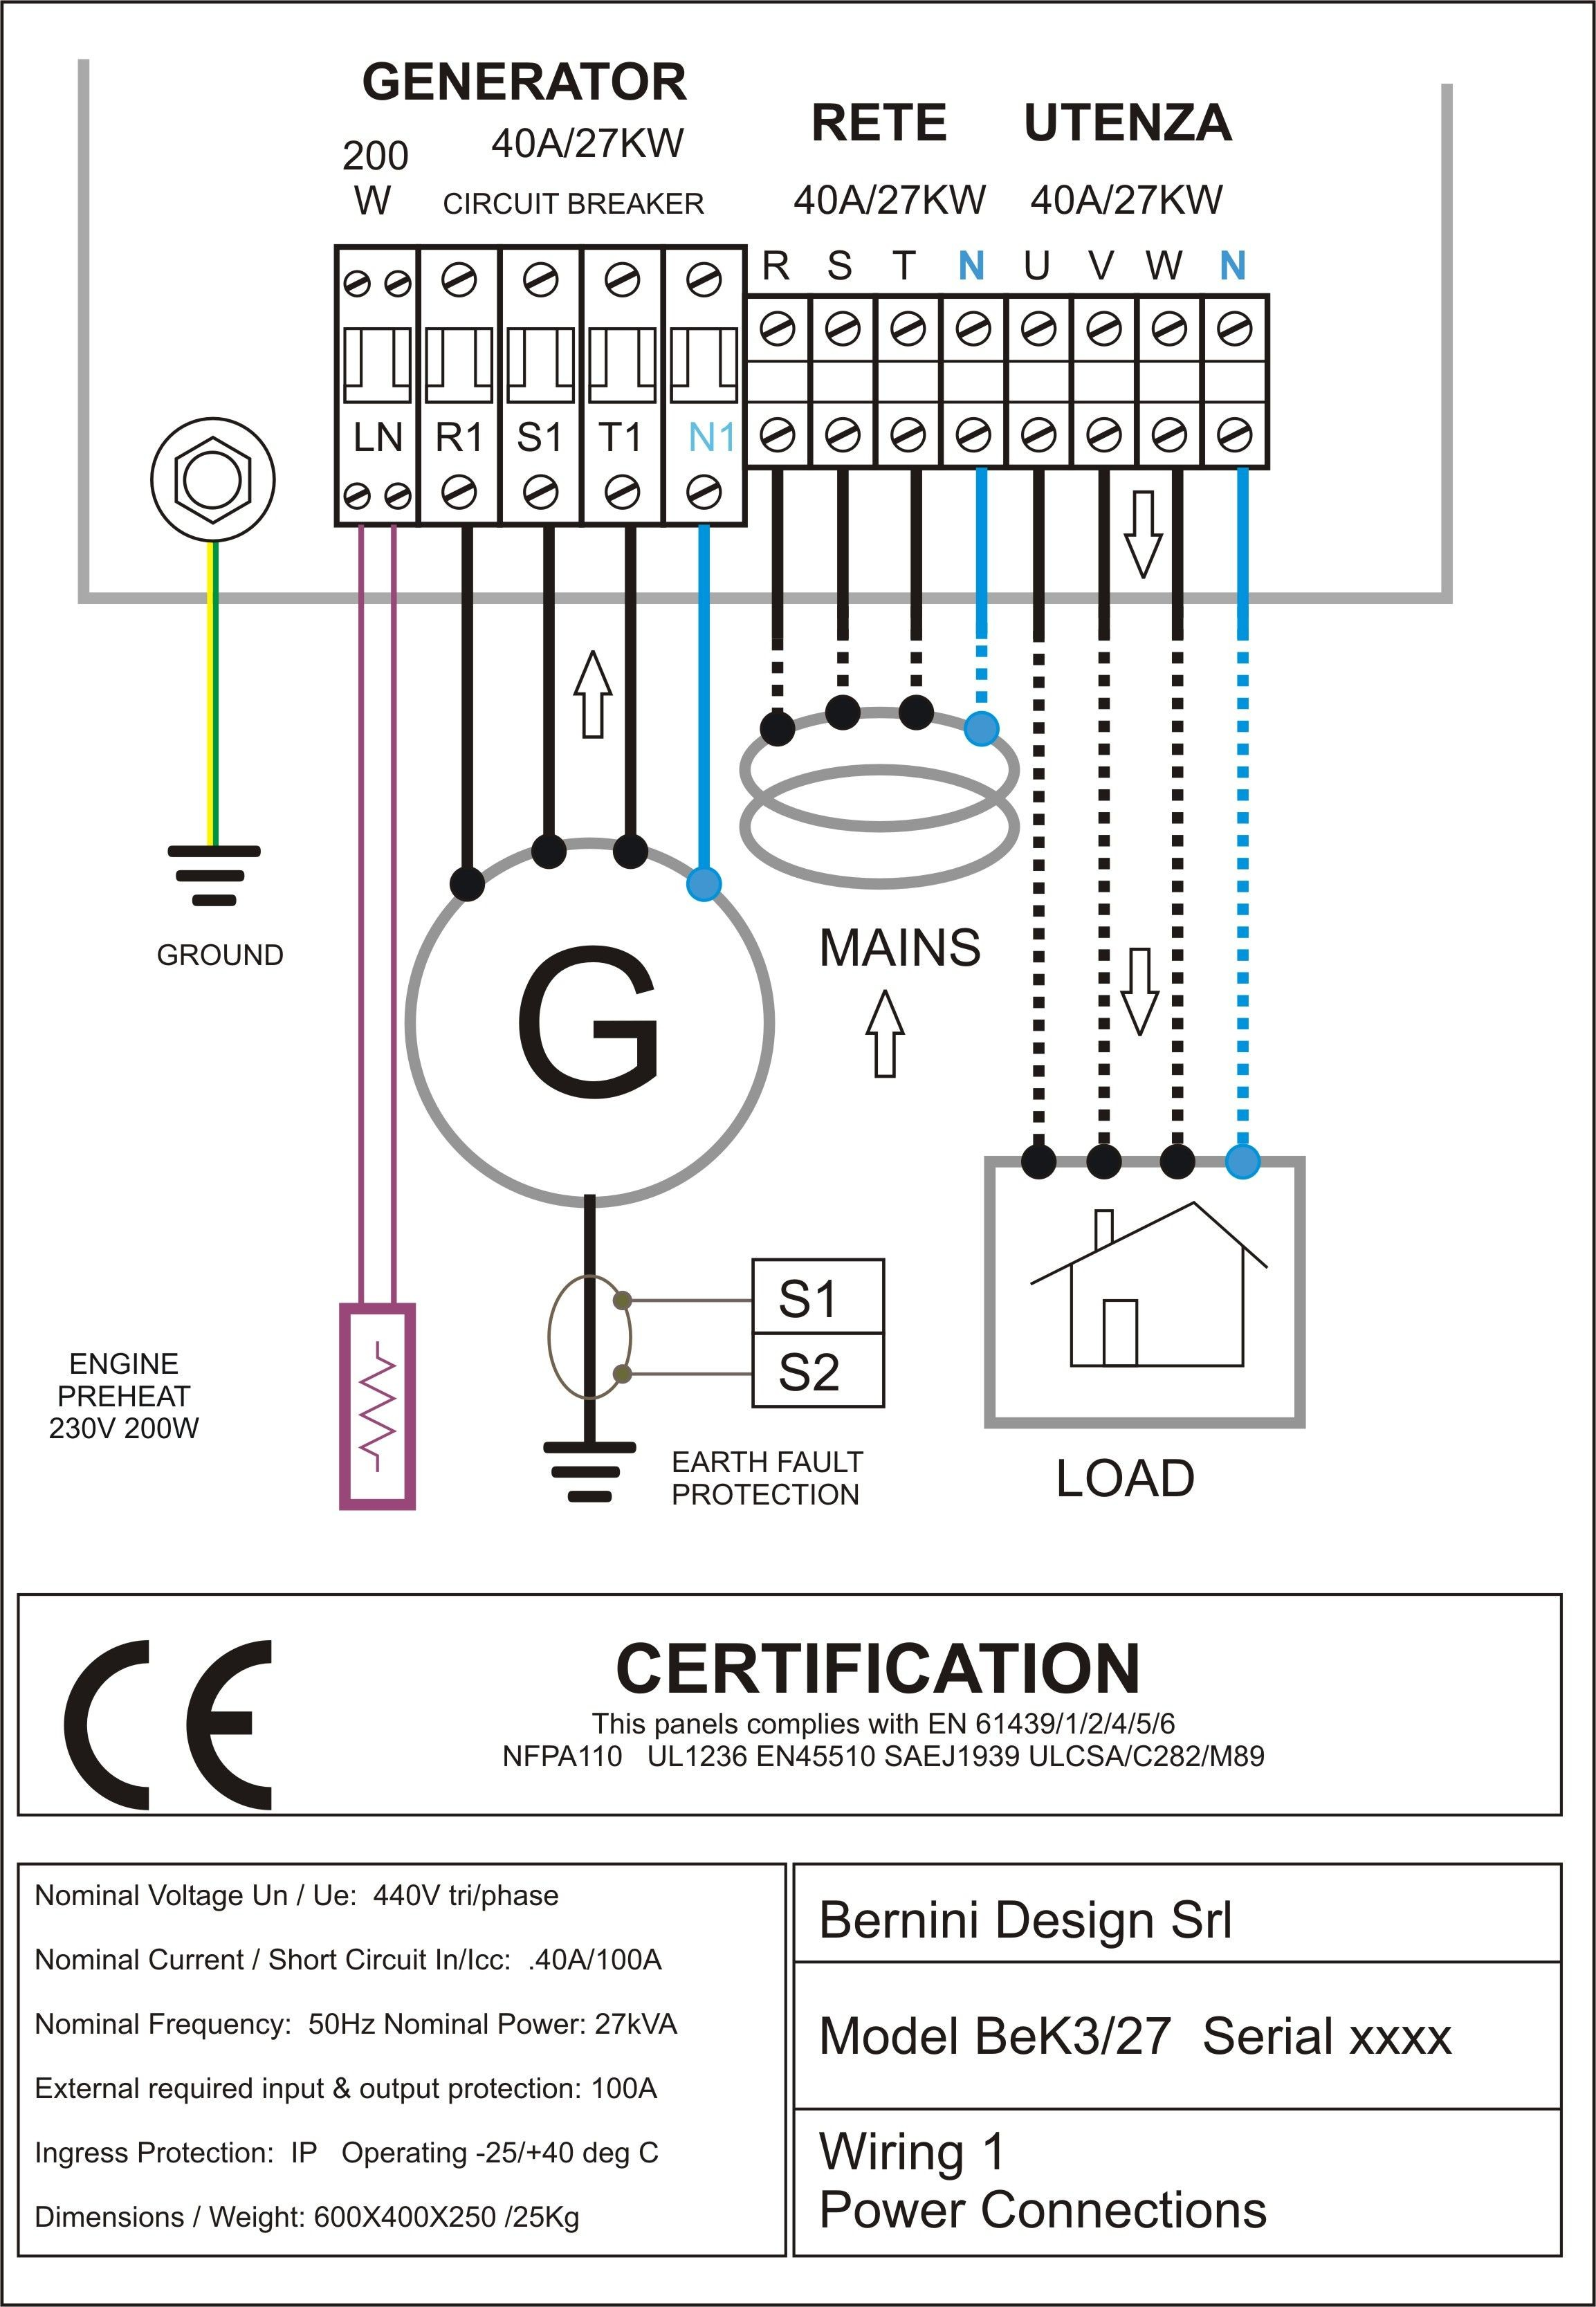 Car Engine Management System Block Diagram Wilbo666 2jz Gte Vvti Wiring Sel Generator Control Panel Ac Connections Of